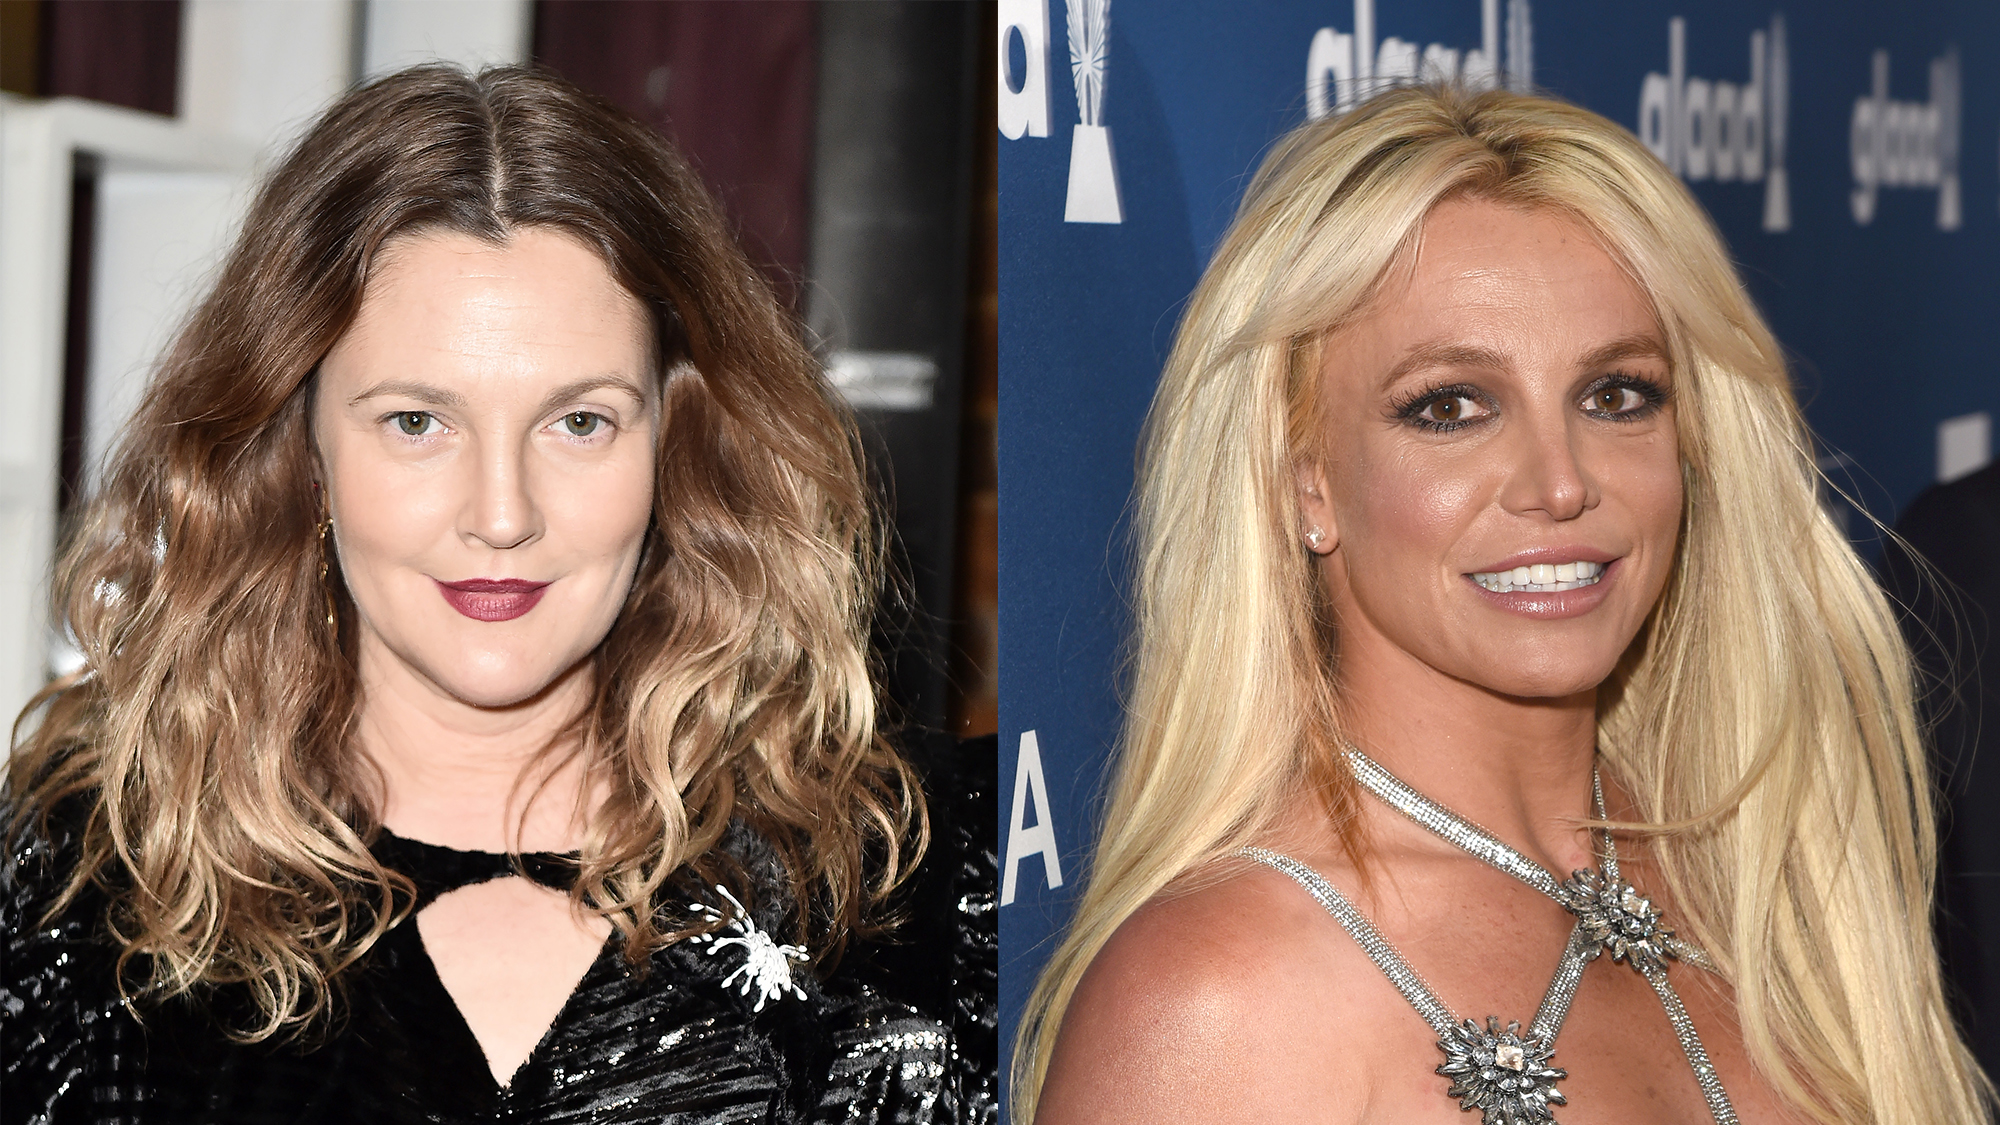 Drew Barrymore and Britney Spears